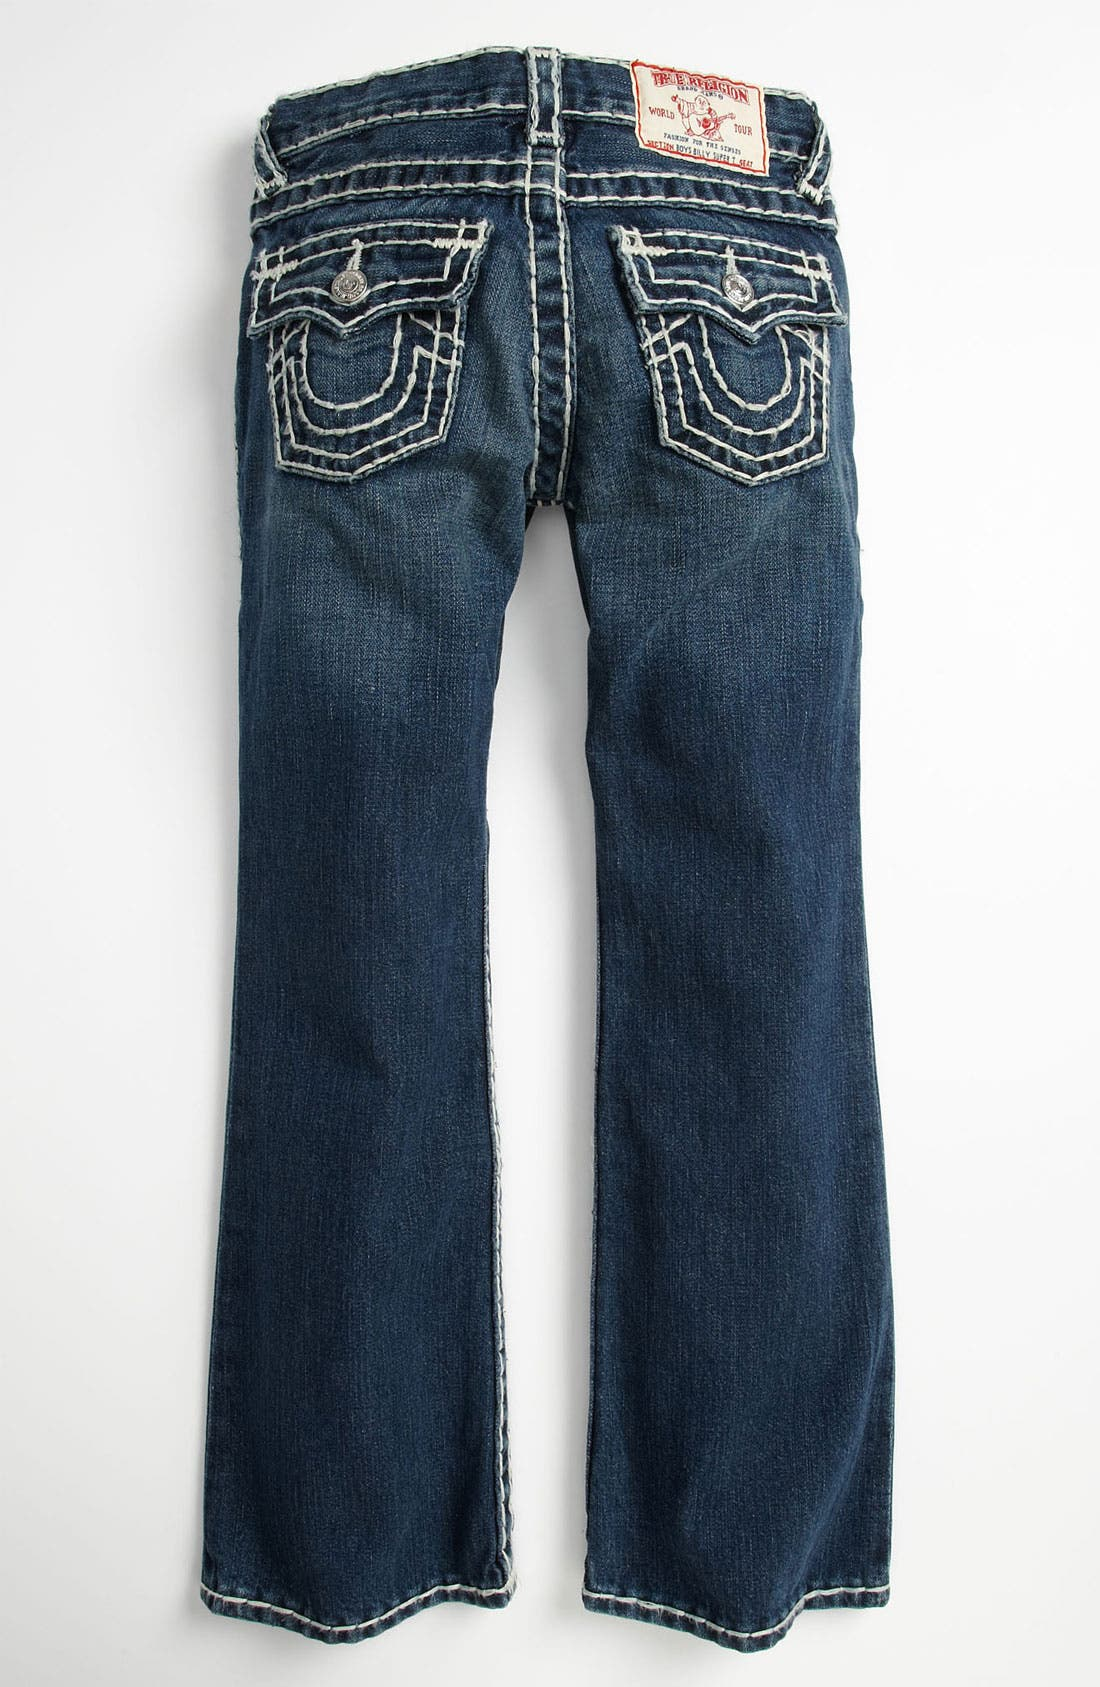 Main Image - True Religion Brand Jeans 'Billy' Bootcut Jeans (Big Boys)